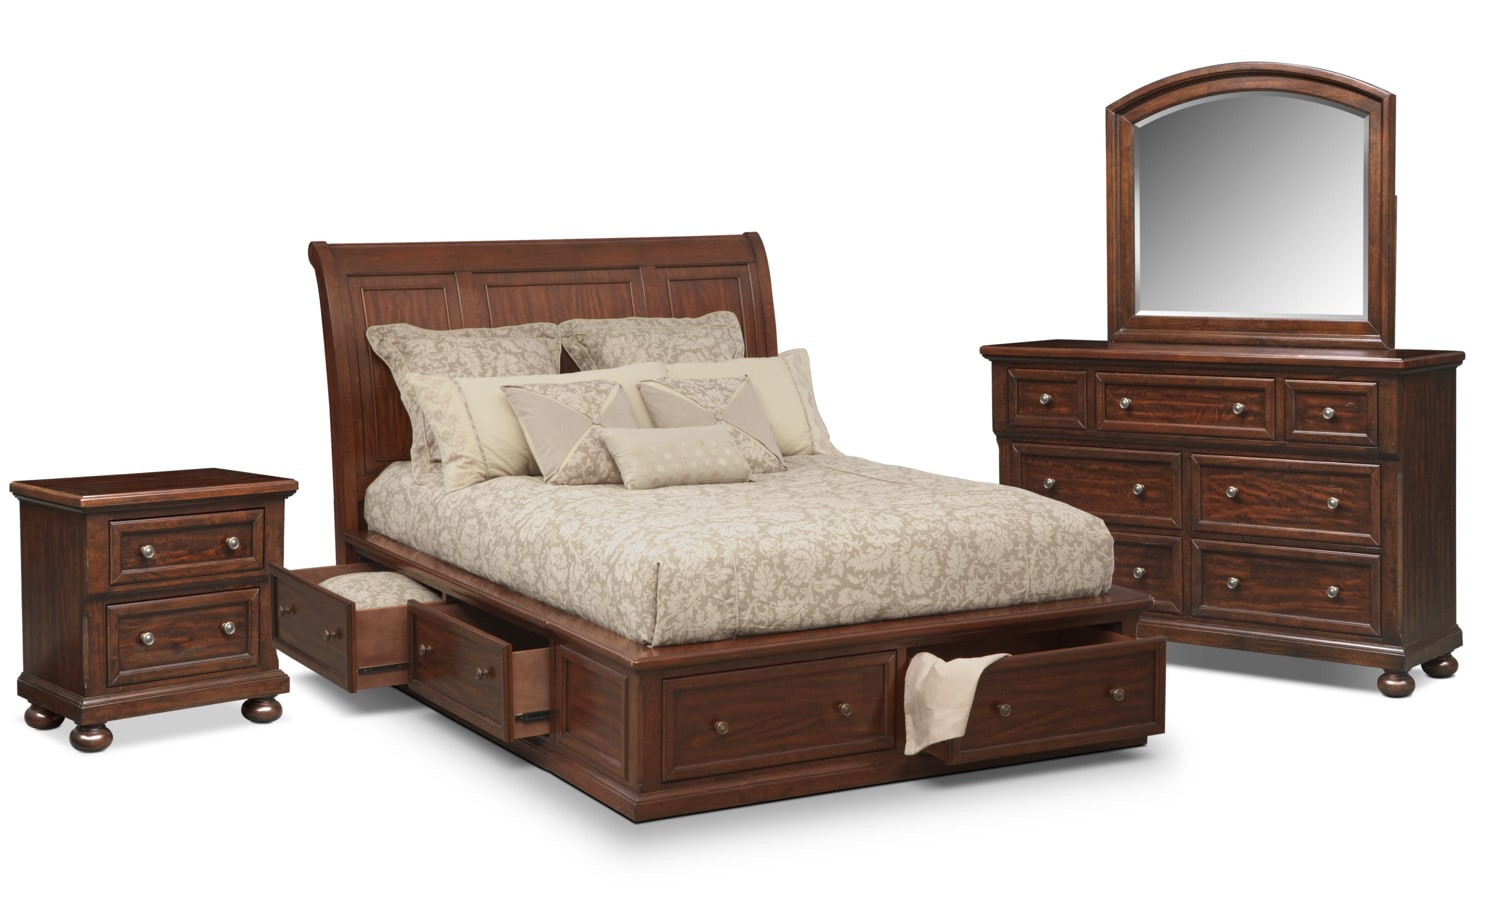 Bedroom Furniture Hanover 6 Piece Storage Set With Nightstand Dresser And Mirror